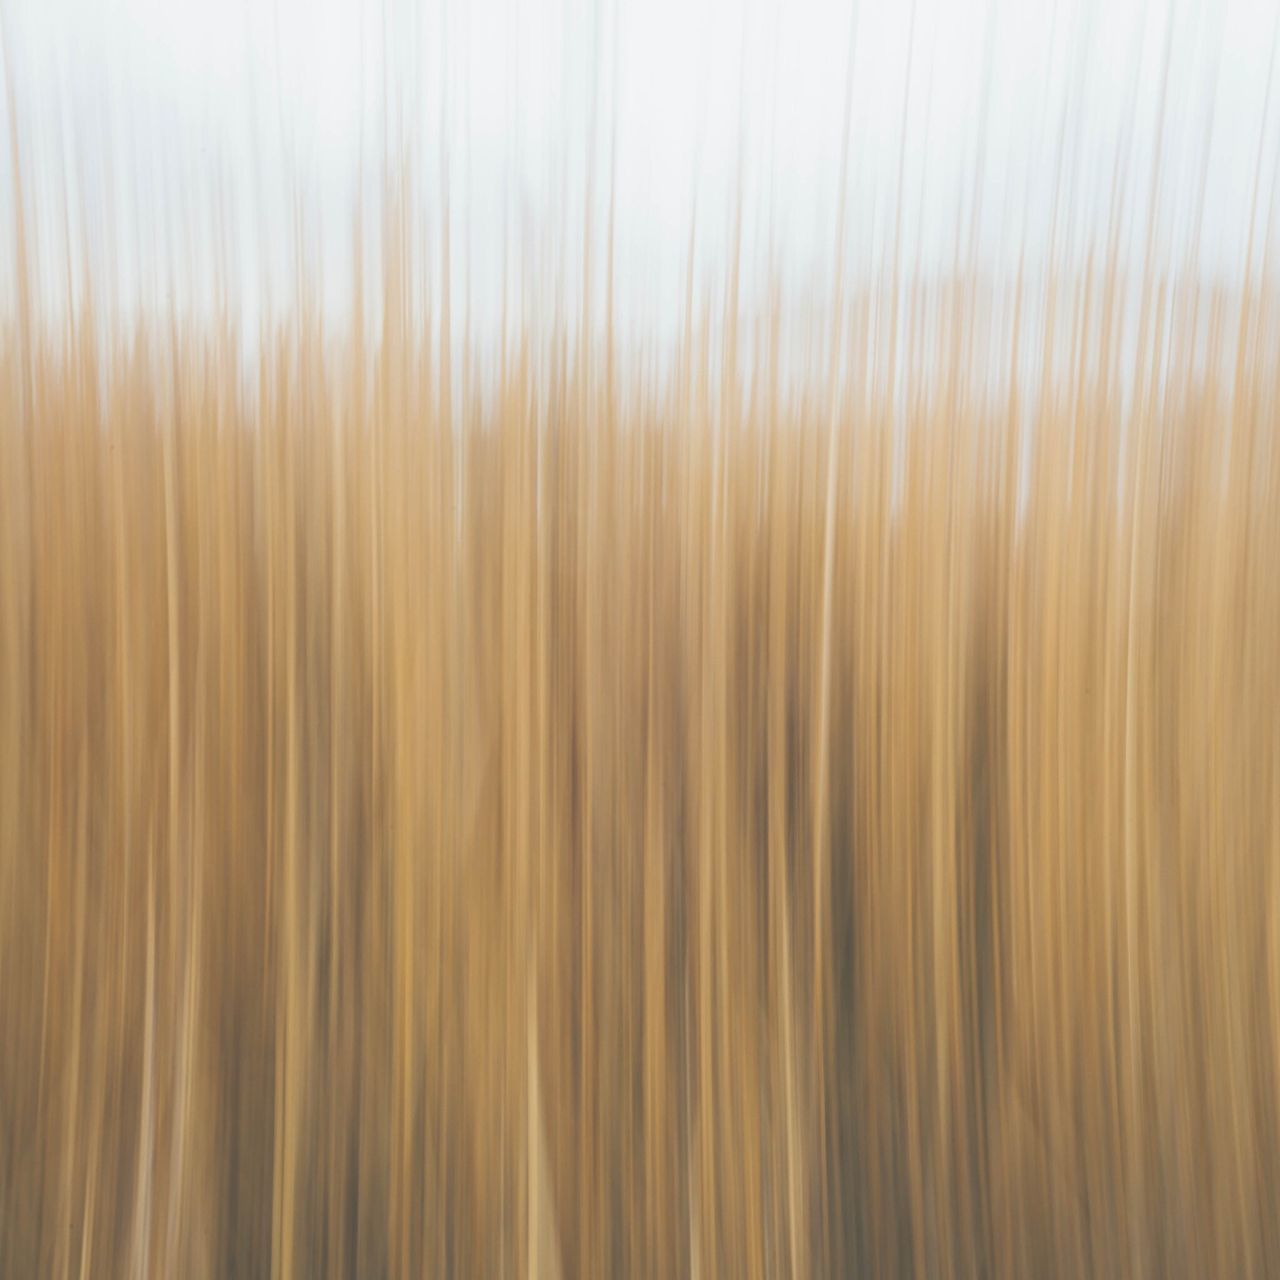 Shutter drag // beach Backgrounds Shutter Full Frame Shutter Speed Close-up Nature Contrast Color Peaceful Textured  Abstract Feelings Sky Photooftheday Minimalism Nature Photography Pattern Technology Perspective Creativity Creative